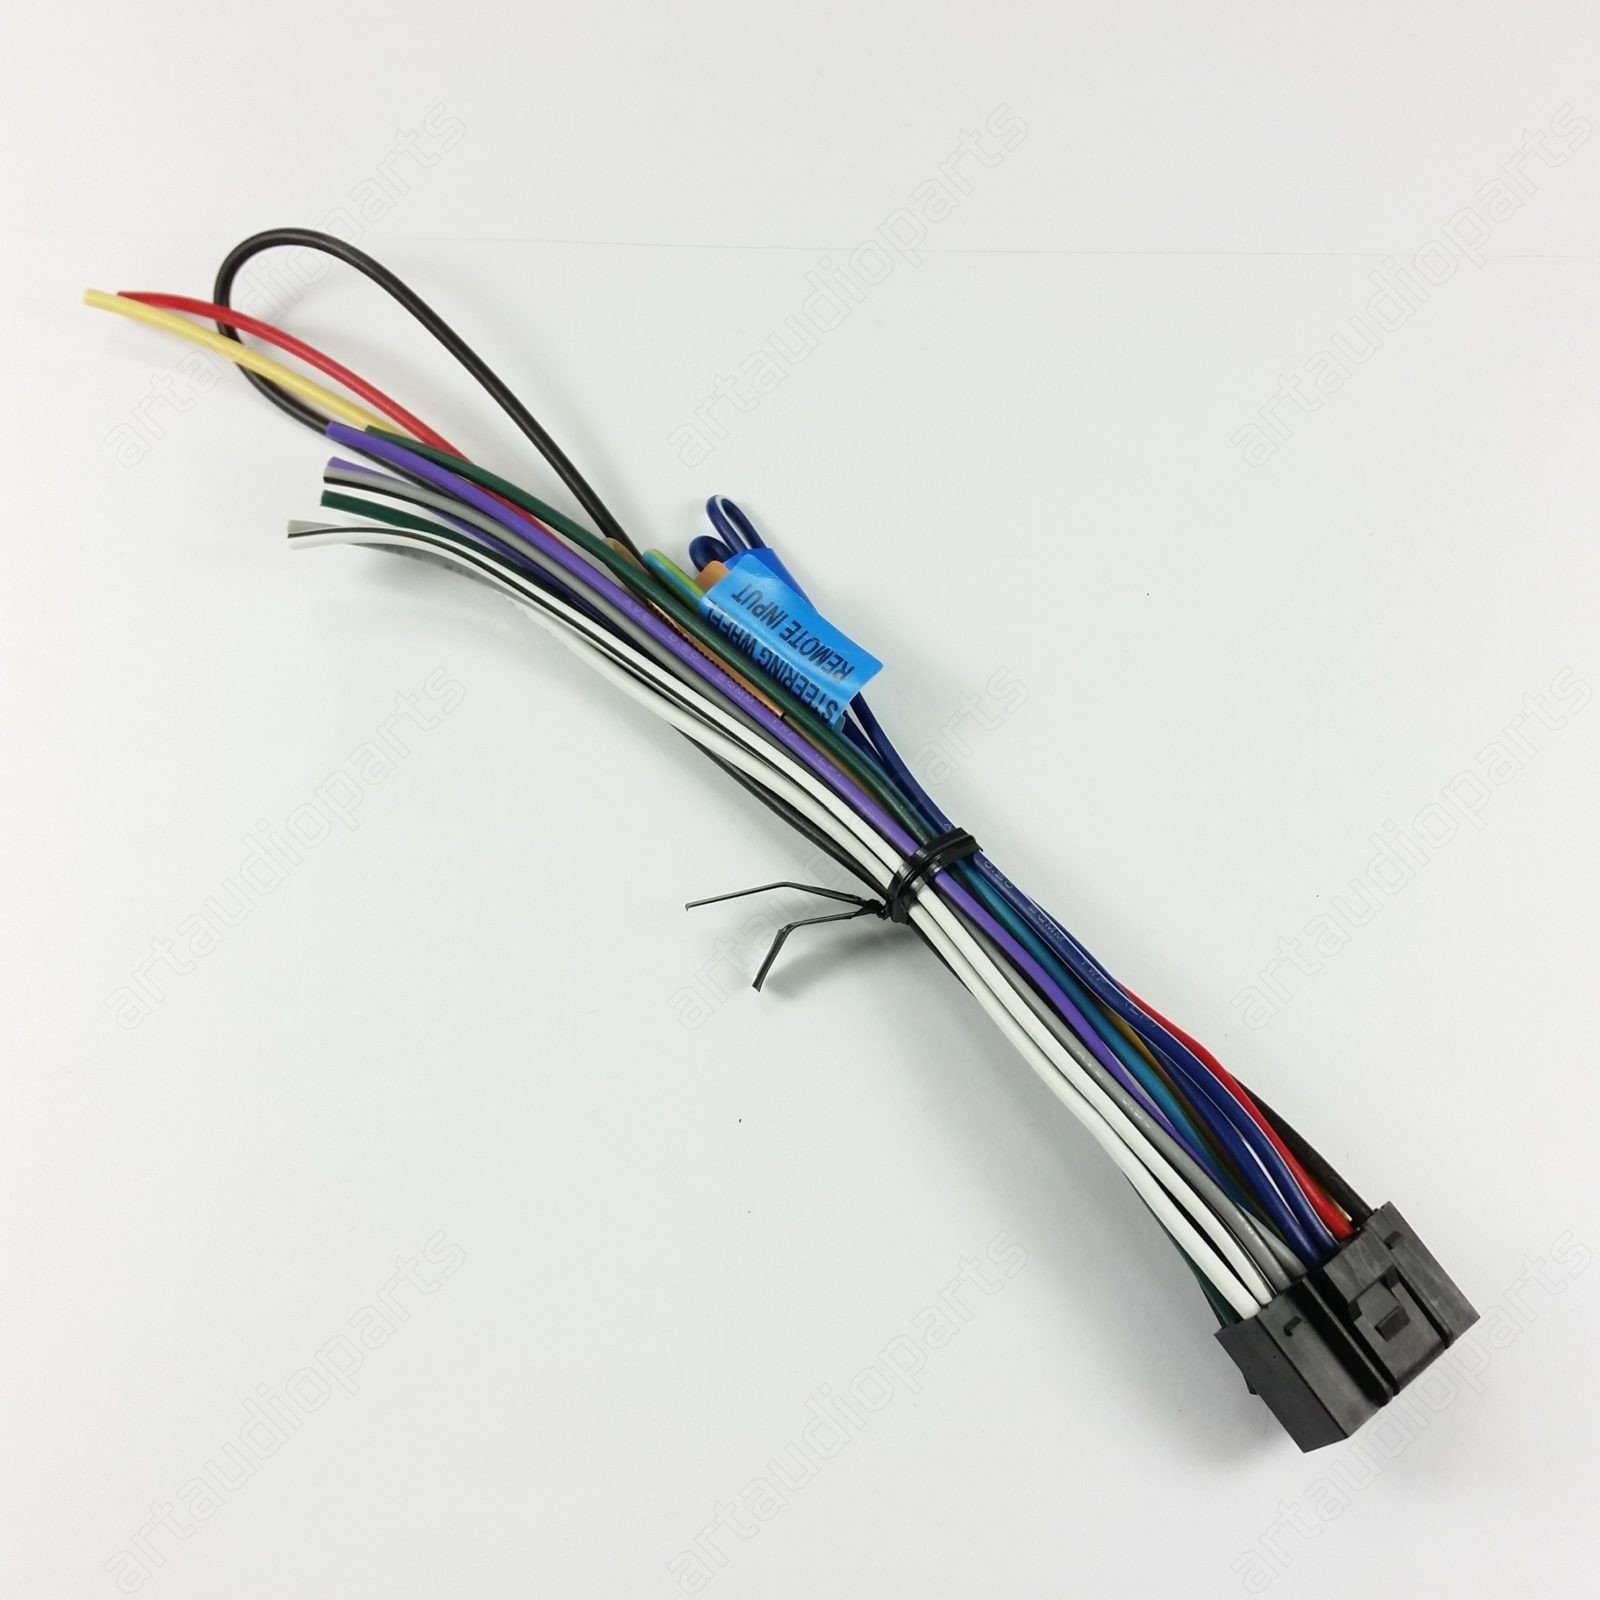 F5B26 Wire Harness Kenwood Kdc 348u | Wiring Resources on kenwood stereo wiring diagram, kenwood kdc 138 pinout, kenwood kdc x695 manual, kenwood kdc 248u wiring, kenwood radio wiring colors, cd player wiring harness diagram, kenwood model kdc wiring-diagram, kenwood kvt 512 wiring, kenwood wiring harness diagram colors, kenwood radios kdc 215s,